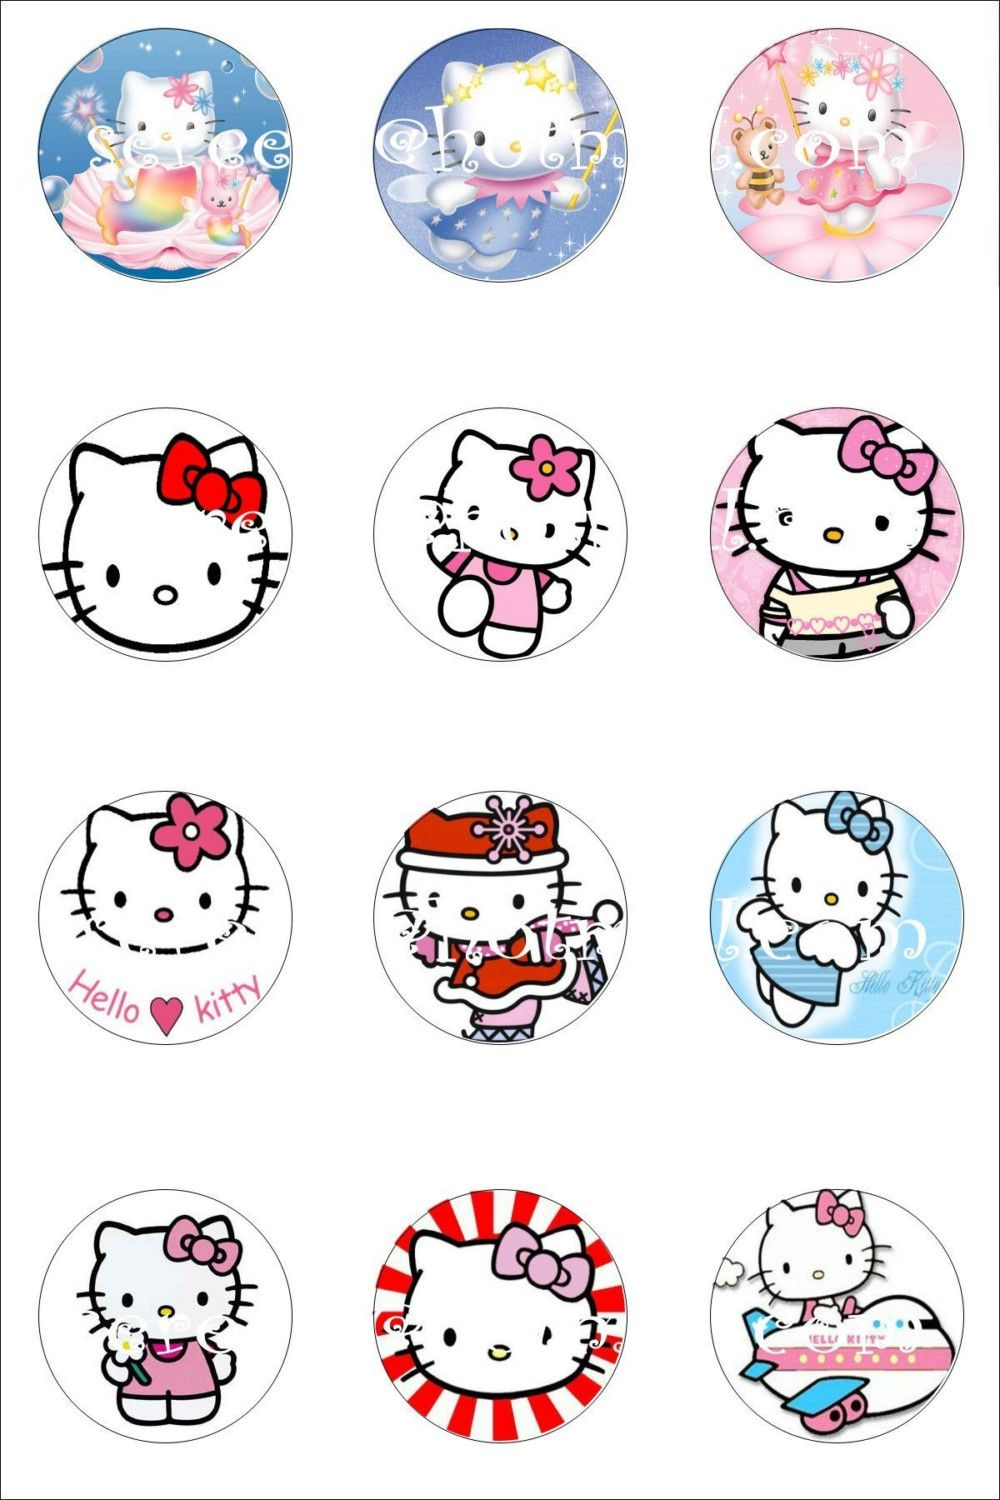 Hello kitty cupcake topper template choice image for Hello kitty cupcake topper template